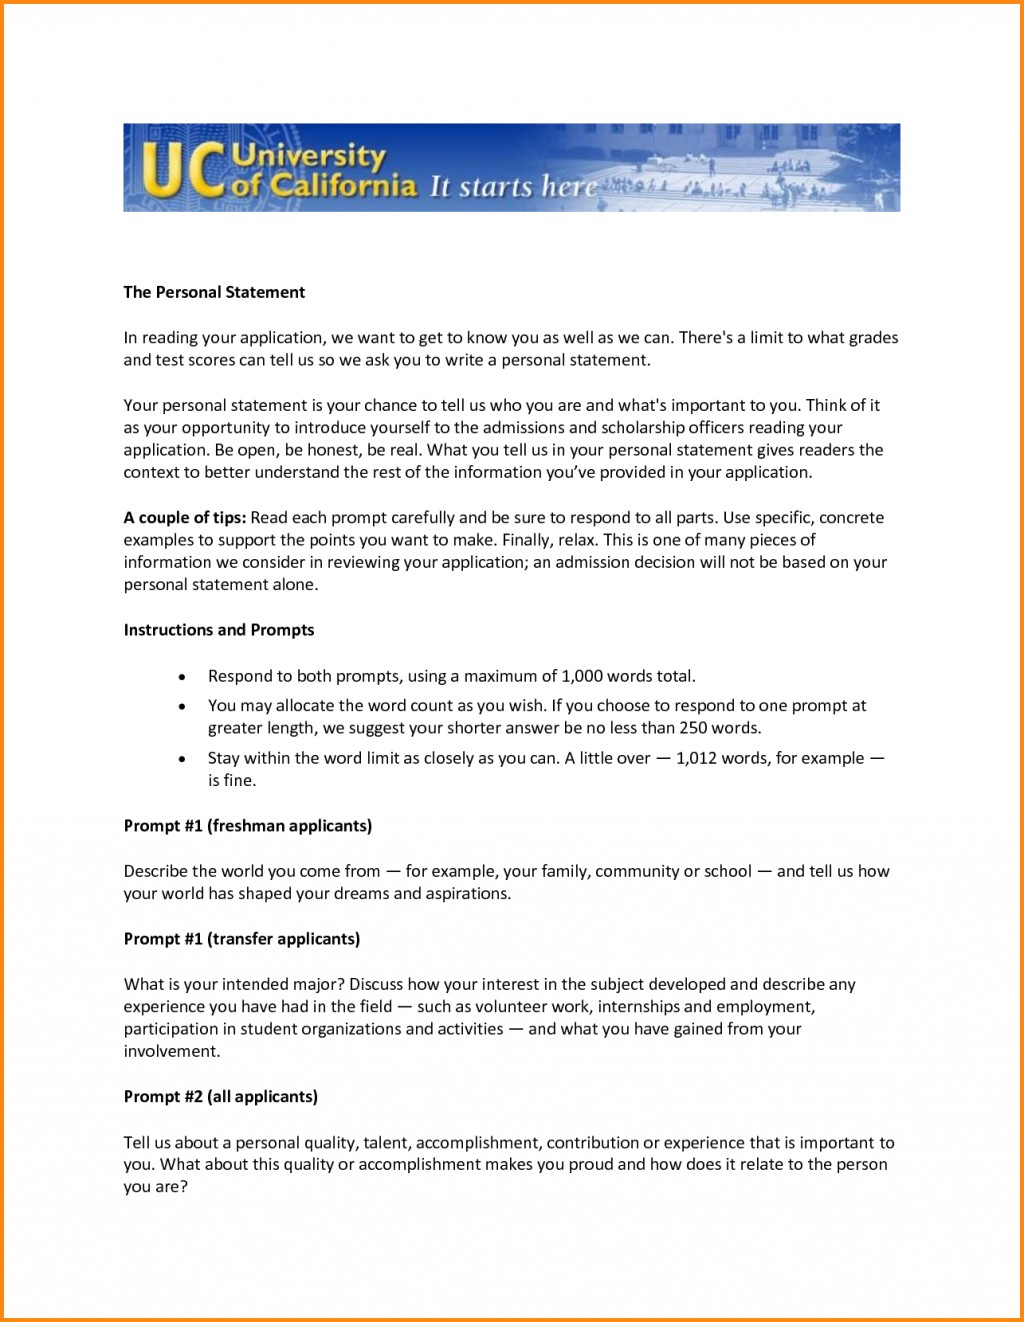 001 Essay Example Uc Transfer Application Personal Statement Workout Spreadsheet Prompt L Best Examples 2016 Prompts Large